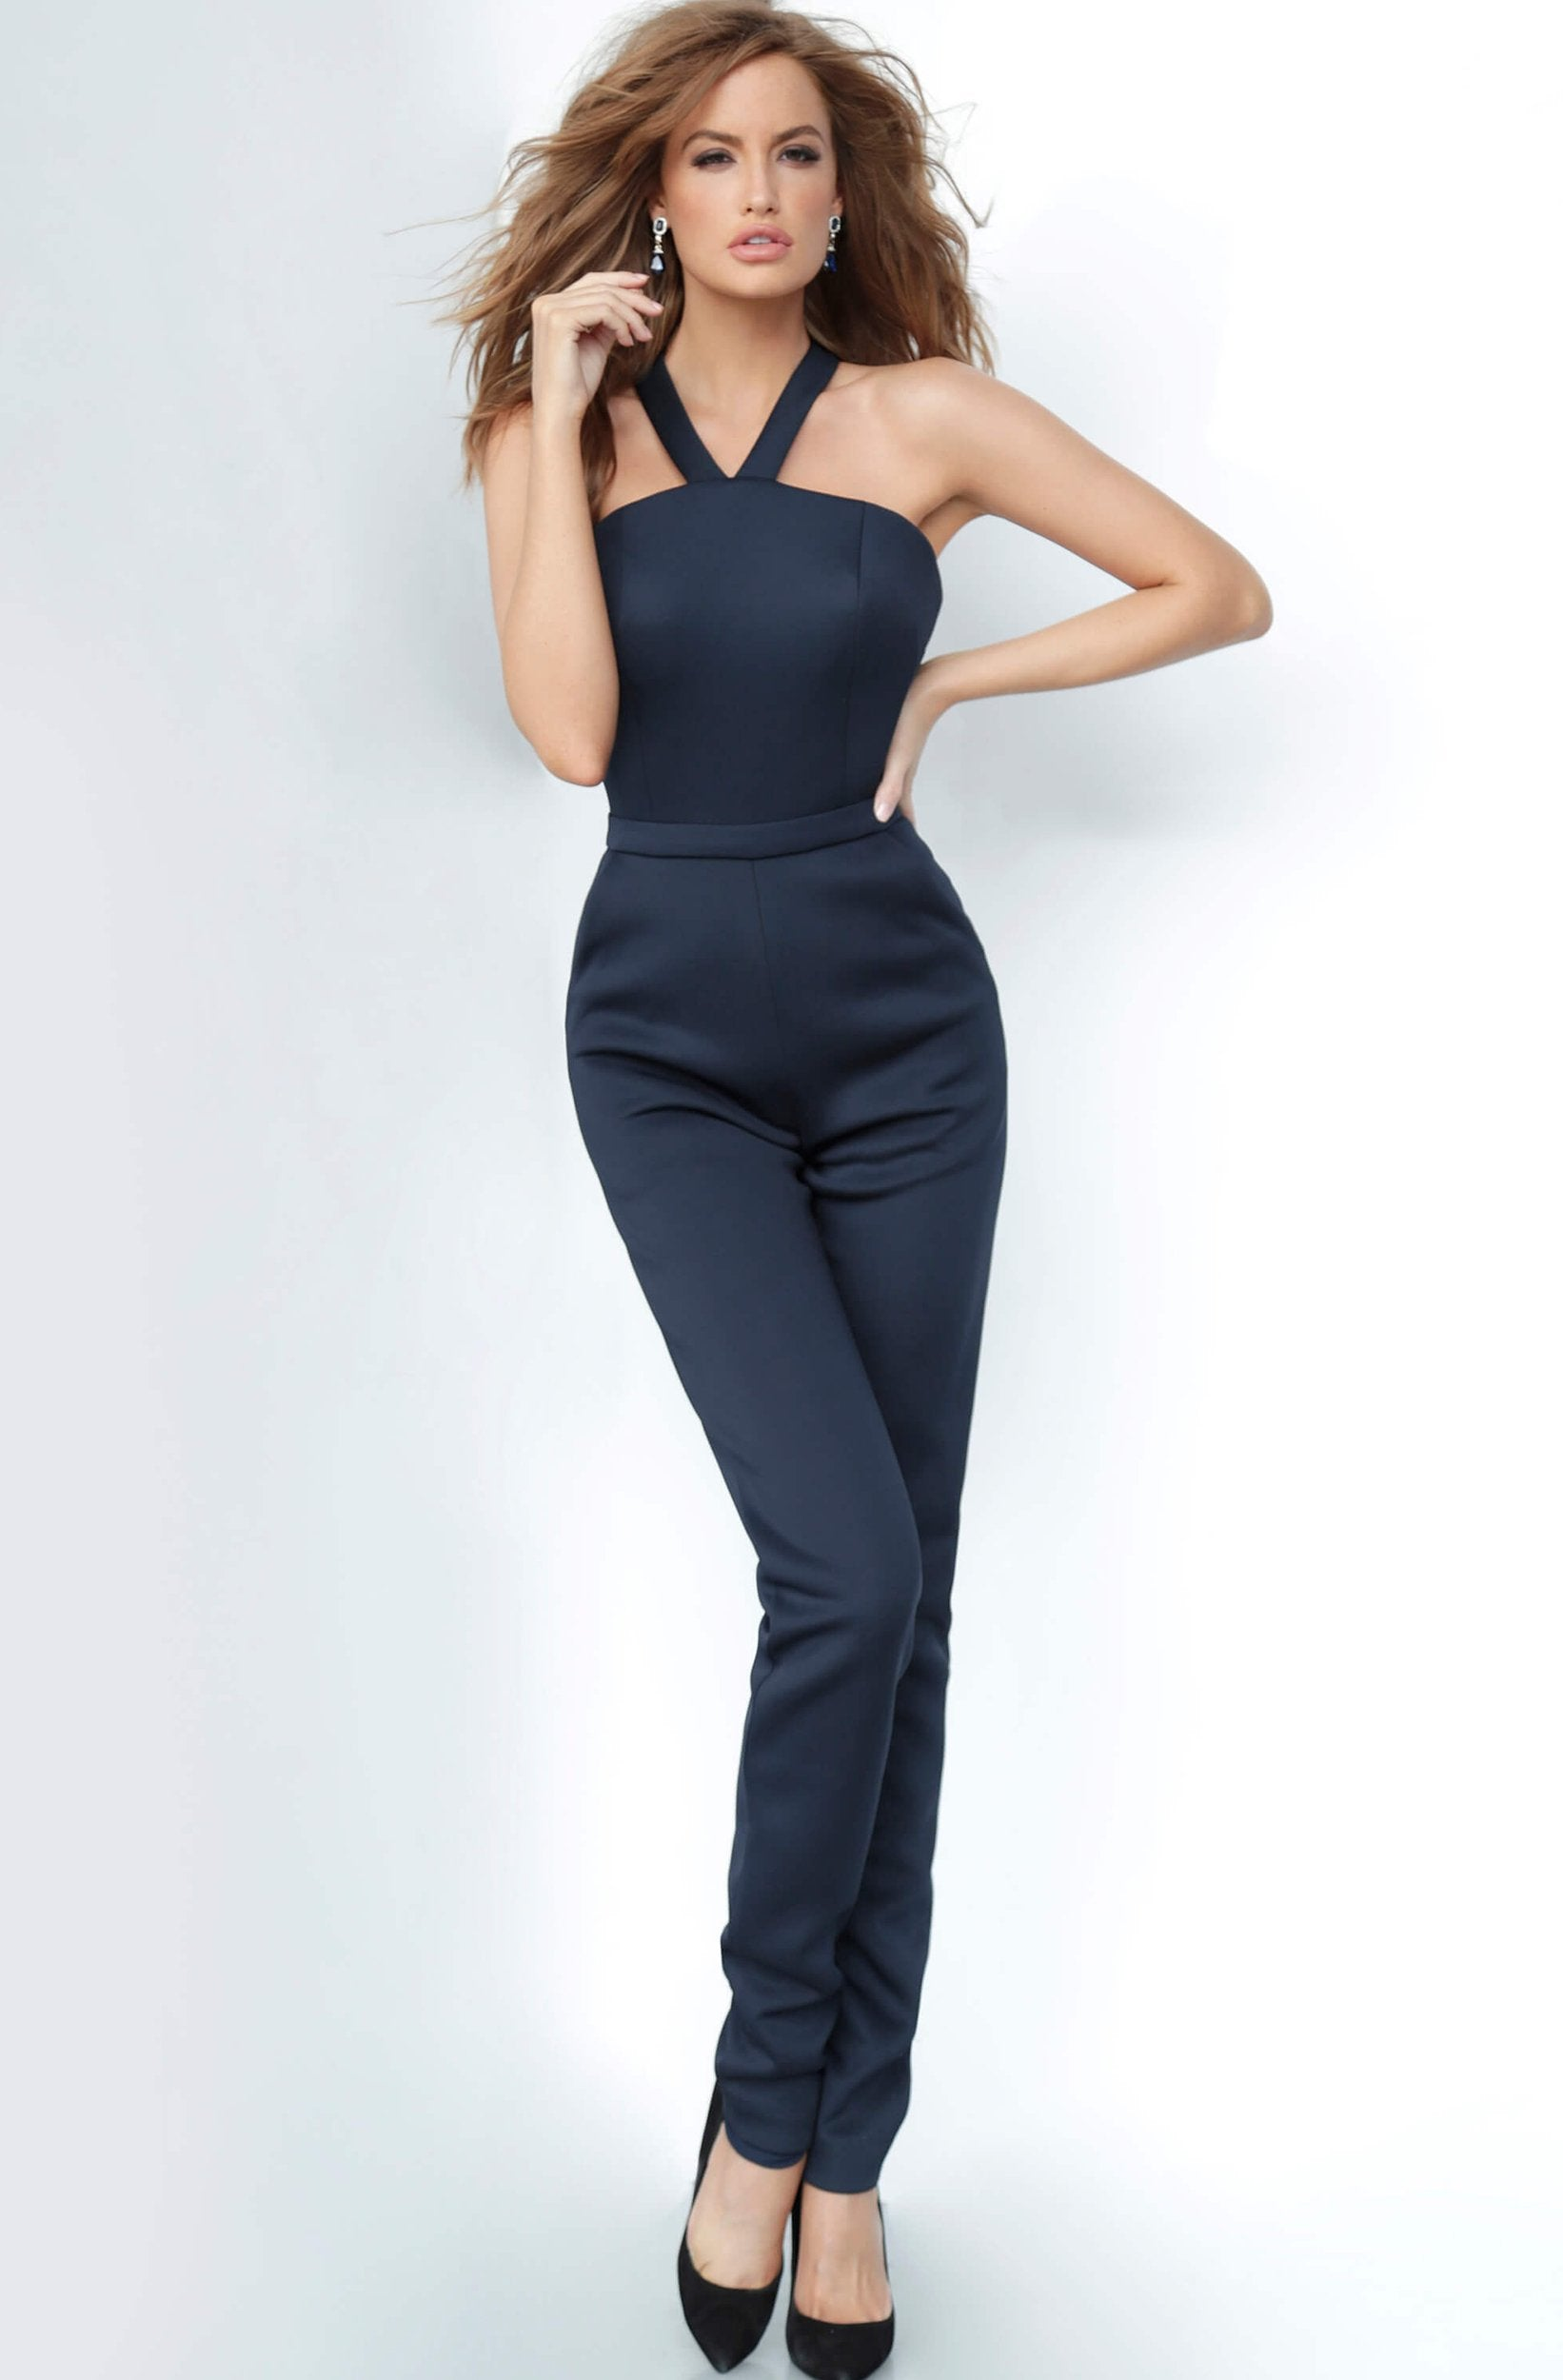 Jovani - 1458 Halter V Strapped Sleeveless Scuba Fitted Jumpsuit in Blue